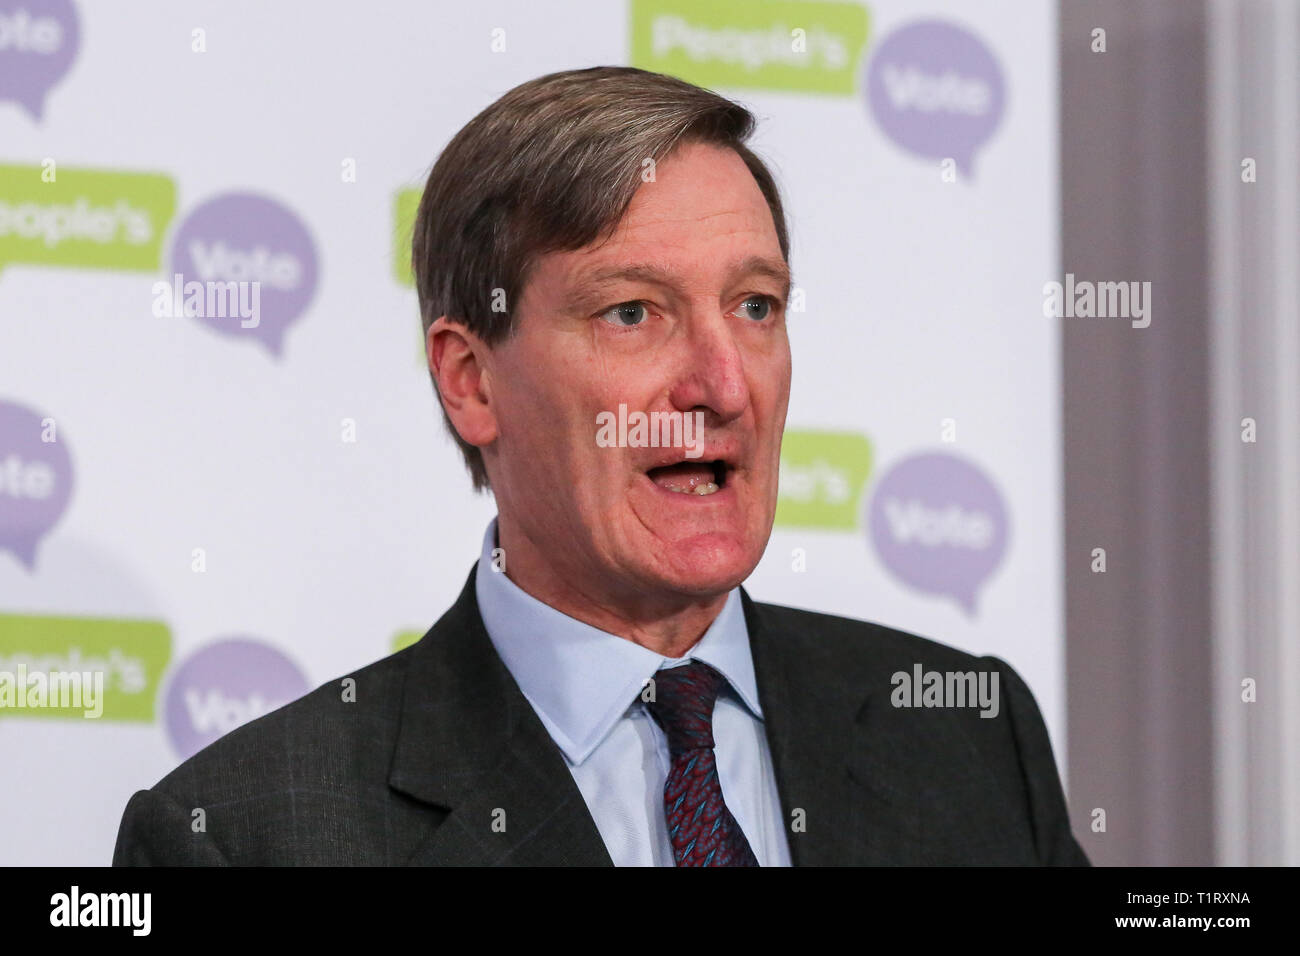 Dominic Grieve MP - Conservative former Attorney General is seen speaking at a People's Vote press conference in Westminster setting out an analysis of the different Brexit options facing Members of Parliament in indicative votes. British Prime Minister Theresa May told the backbench Tory MPs this evening that she will stand down if they back her EU withdrawal deal. Stock Photo